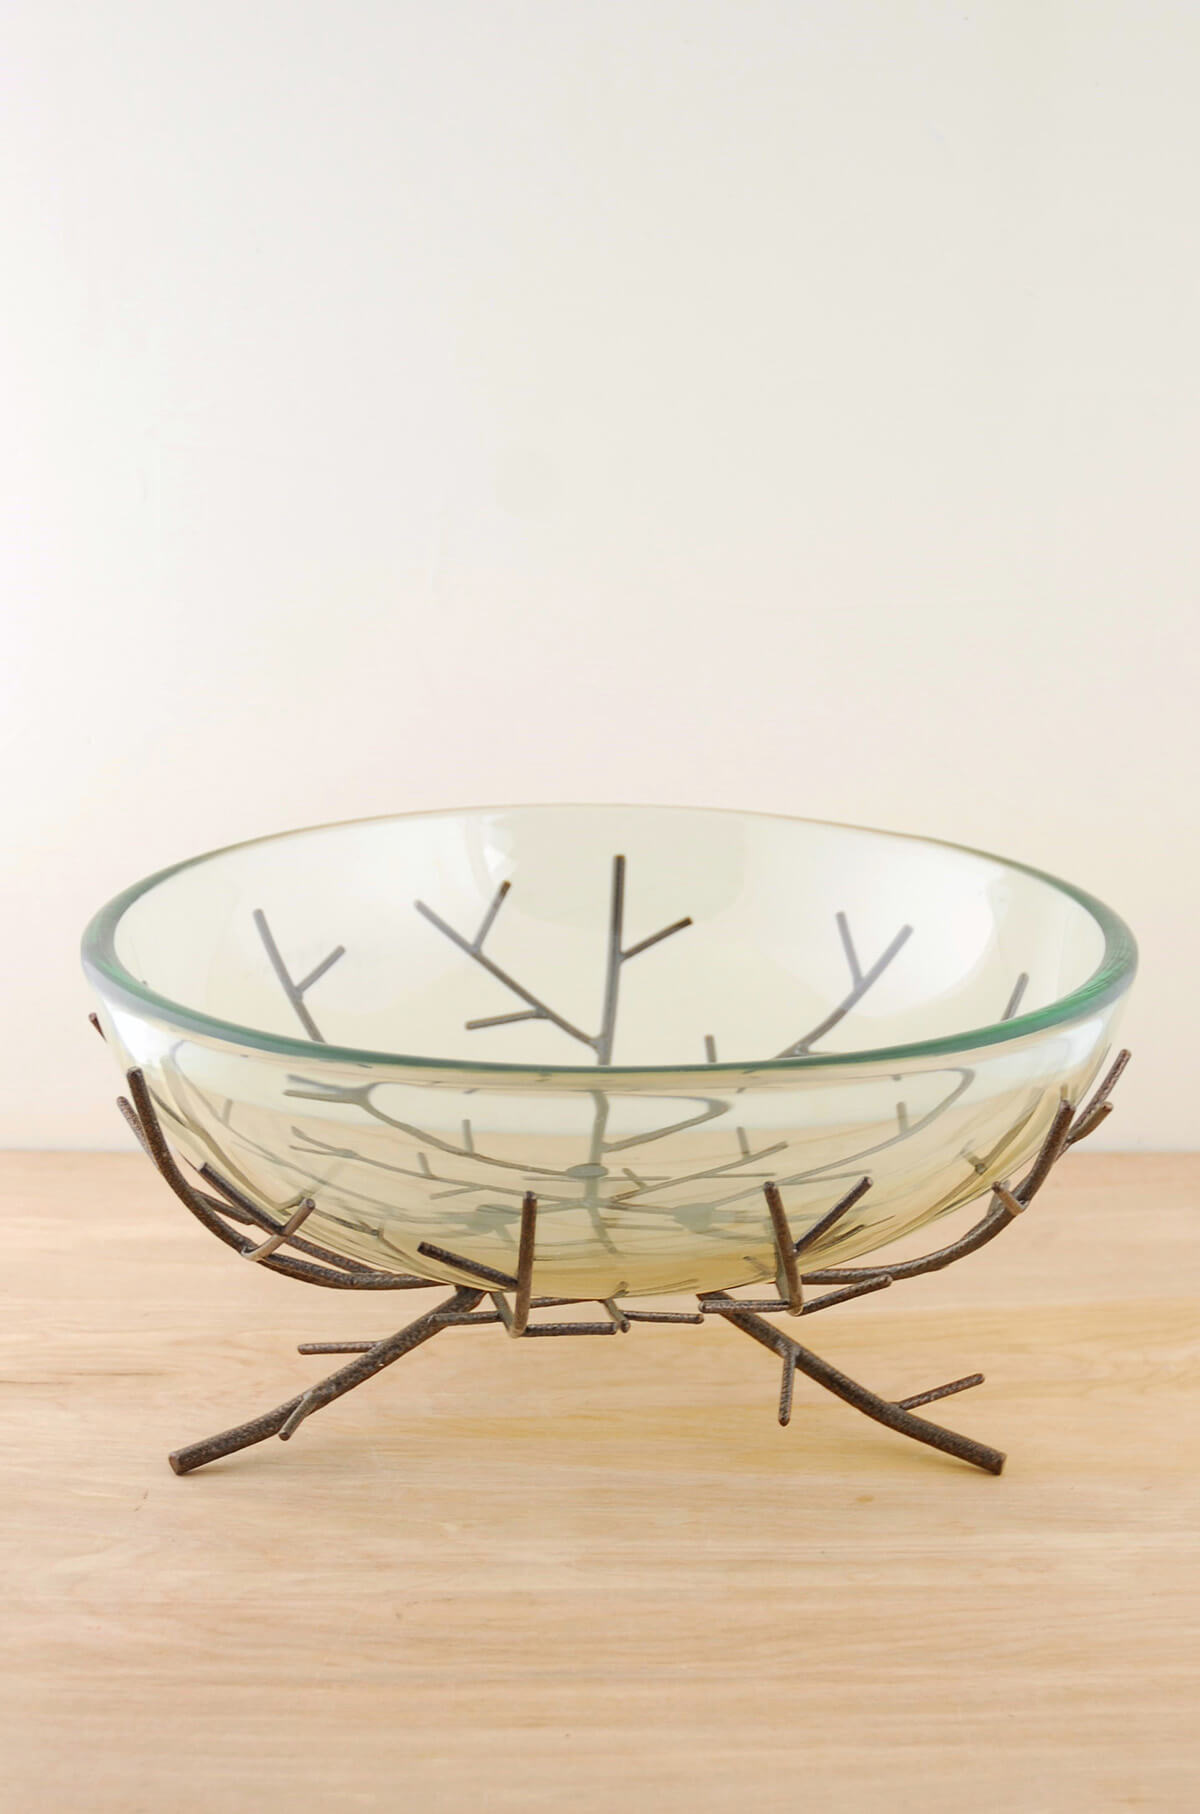 Metal Centerpiece Bowl Floating Candle Bowl On Metal Branch Stand